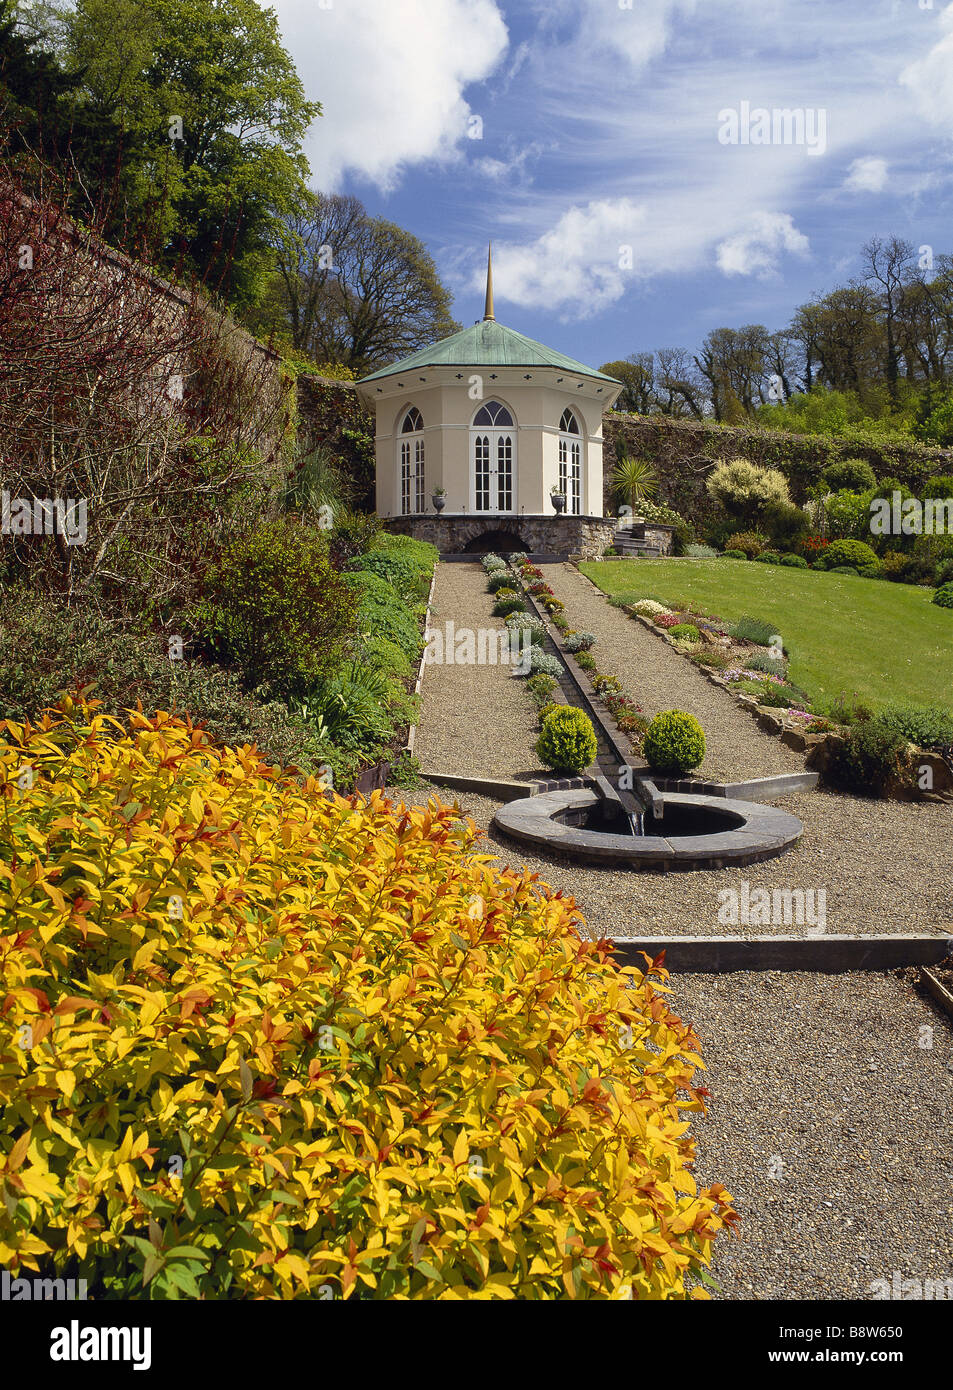 The Walled Garden with Gothic Gazebo and glorious Spirea in summer at Colby Woodland Garden - Stock Image